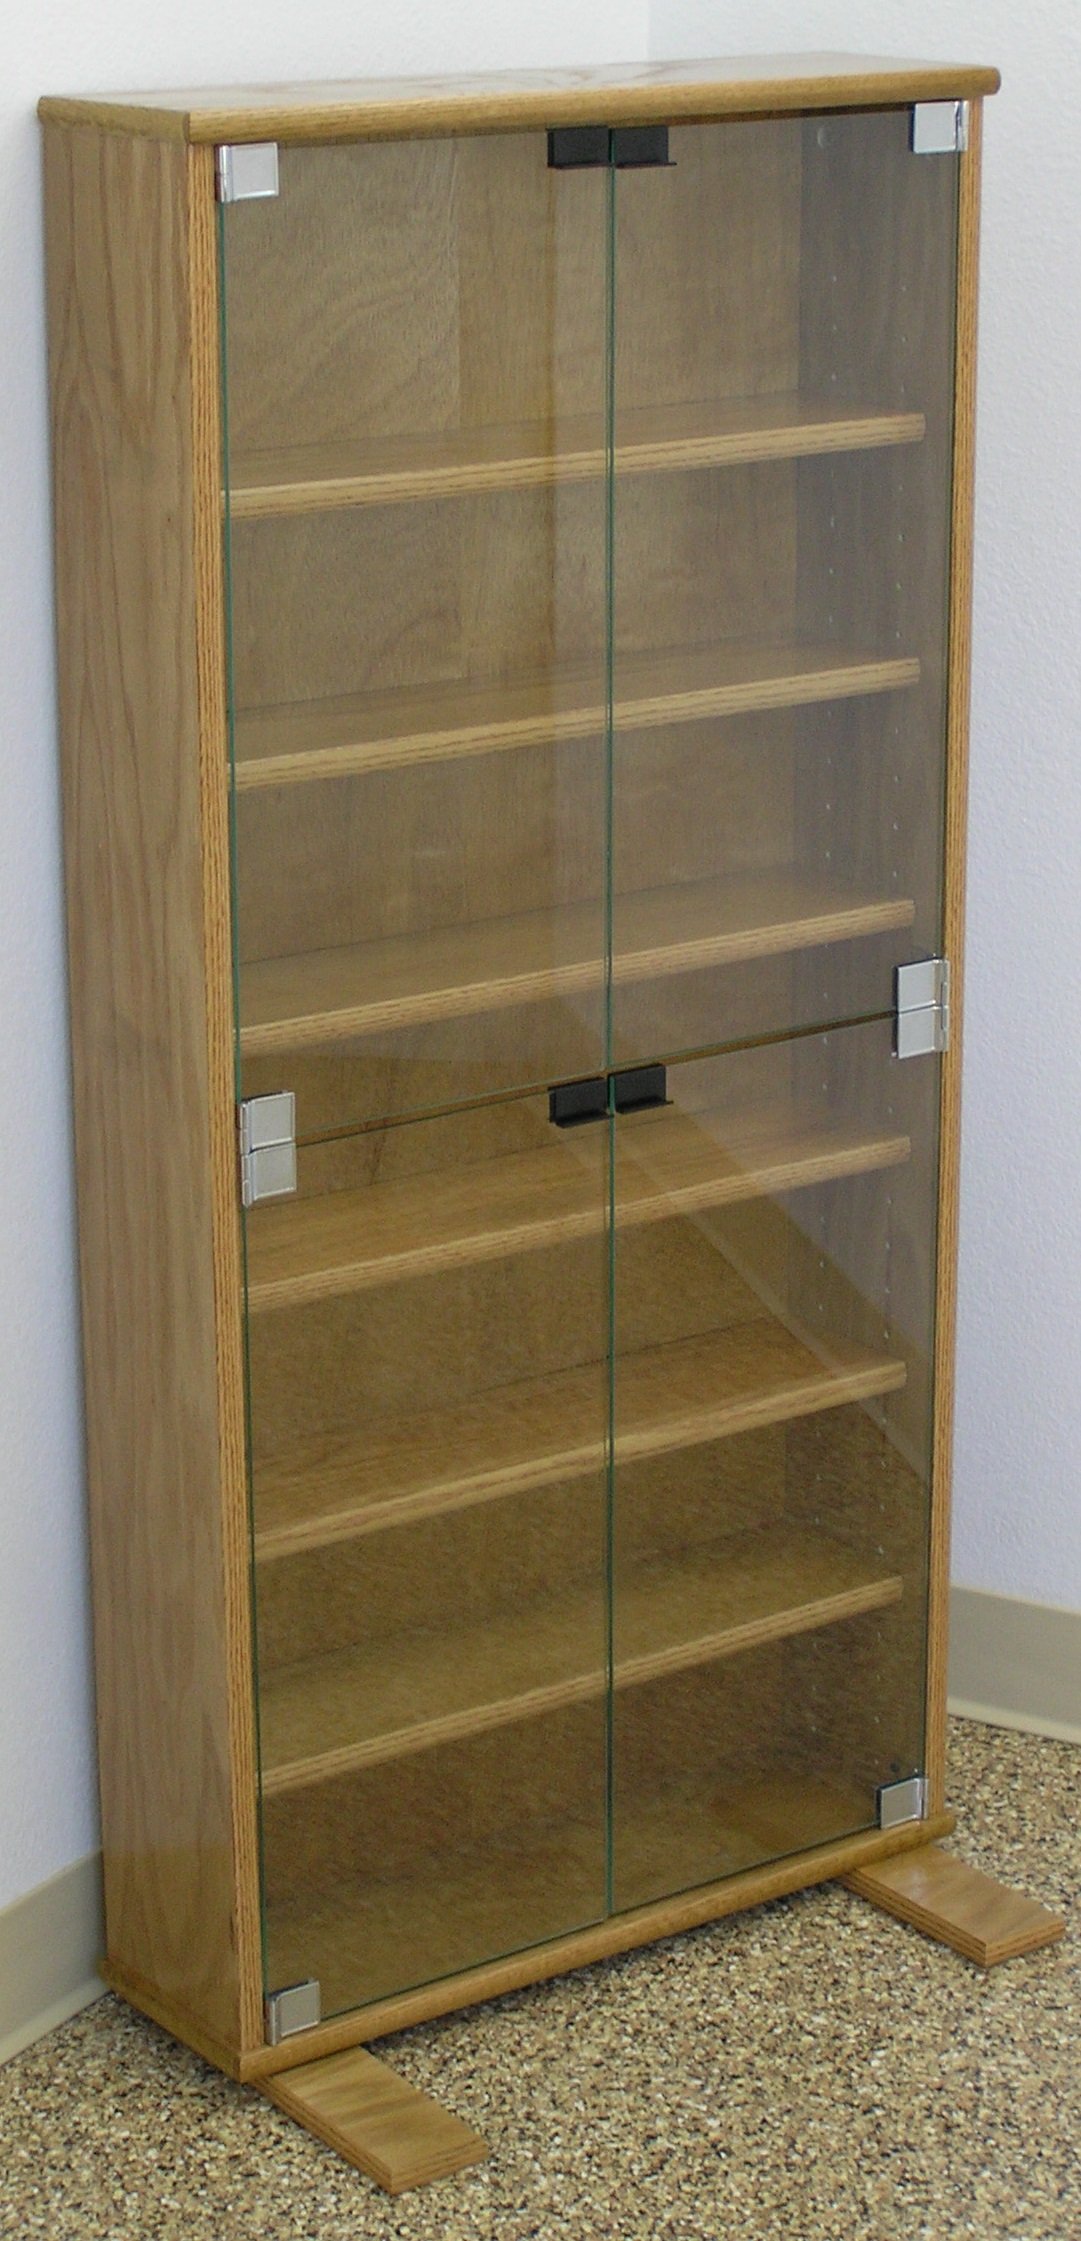 DVD Storage Cabinets 27 to 72H Oak Maple Glass Doors. Many finishes